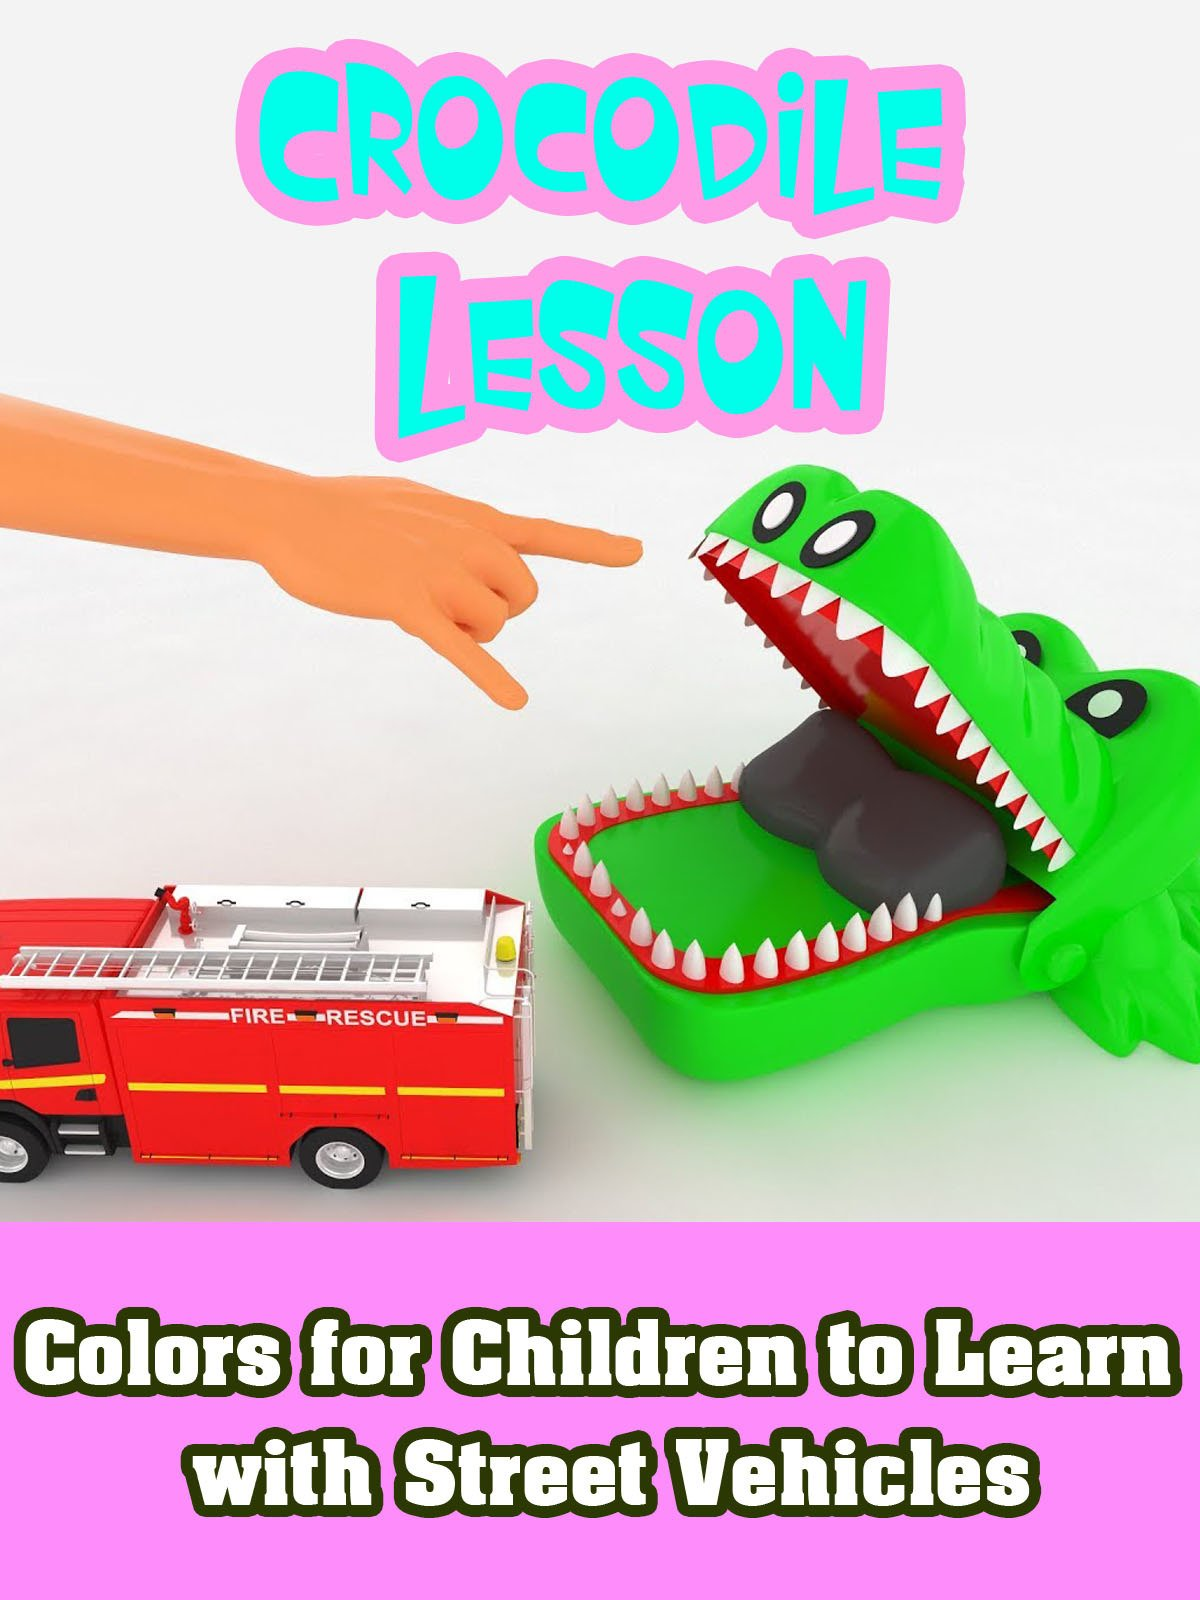 Colors for Children to Learn with Street Vehicles